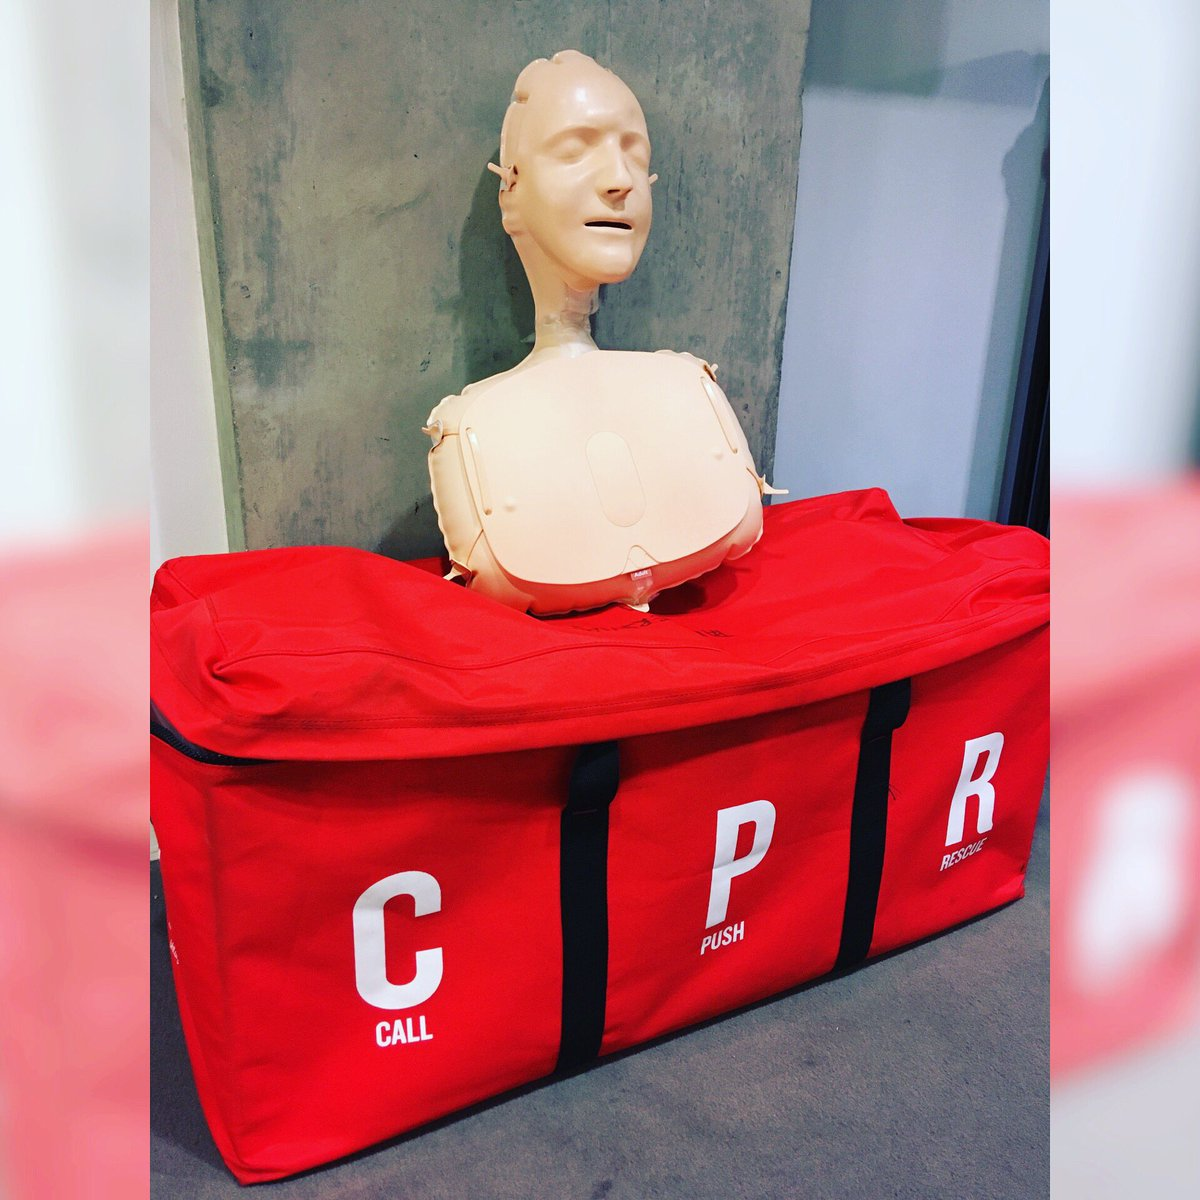 @TheBHF Annie's ready for another day of lifesaving lessons @Unite_Student #stpancreas #lifesaver #lifeskills #london #cpr #cprtraining #heart #cardio #health #cardiacarrest #newskills<br>http://pic.twitter.com/WFBCTxNDz1